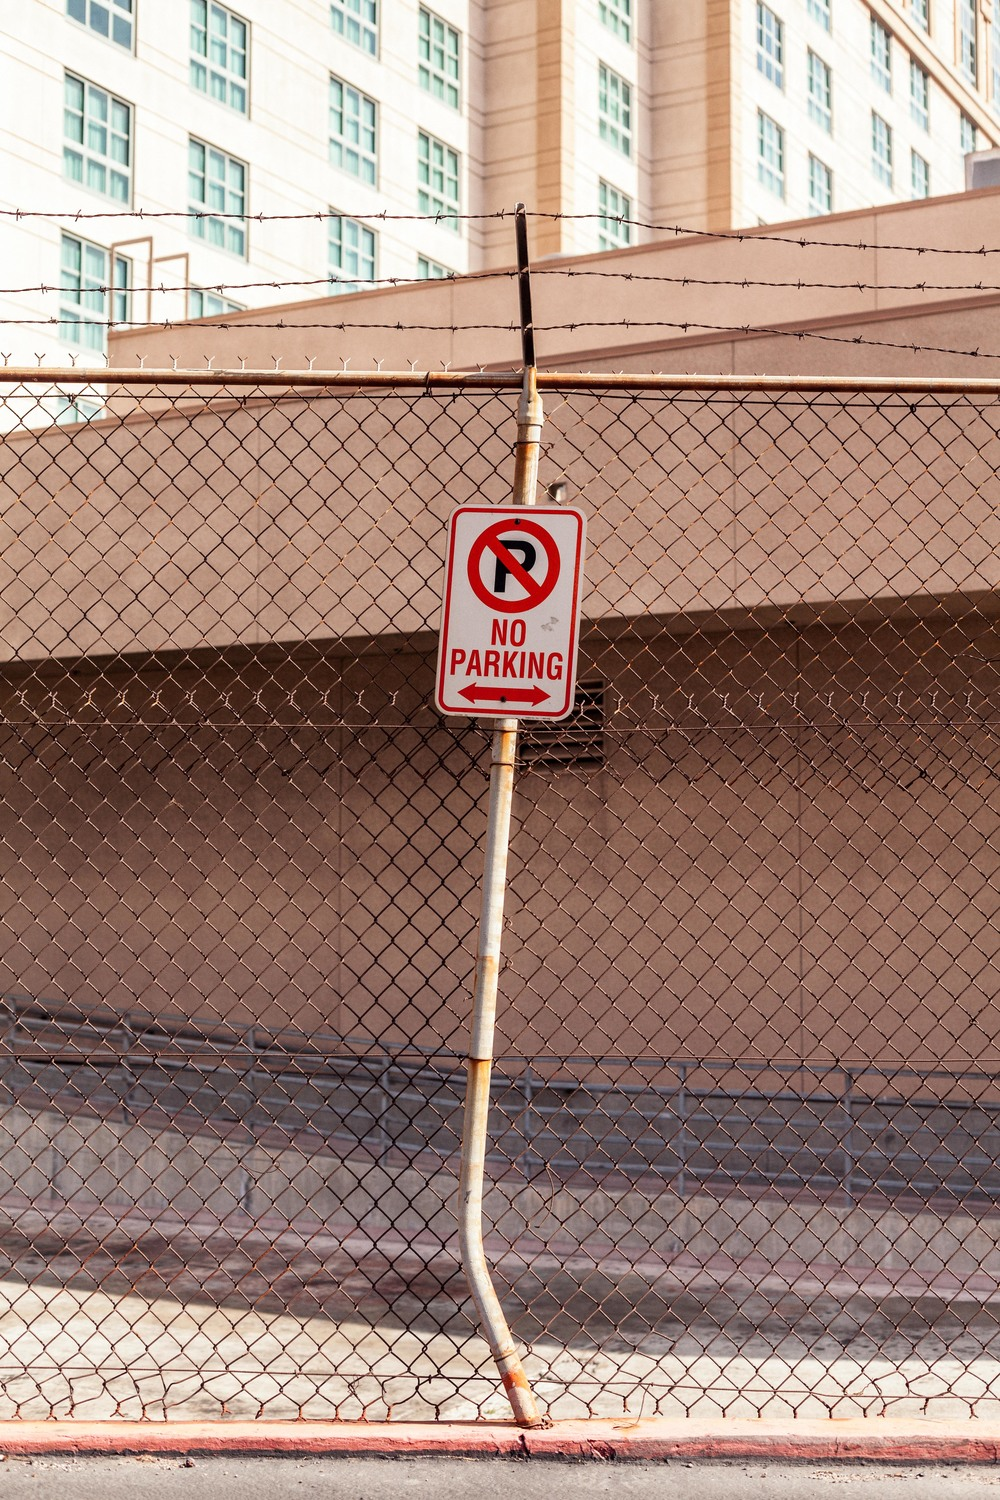 a no parking sign.jpg